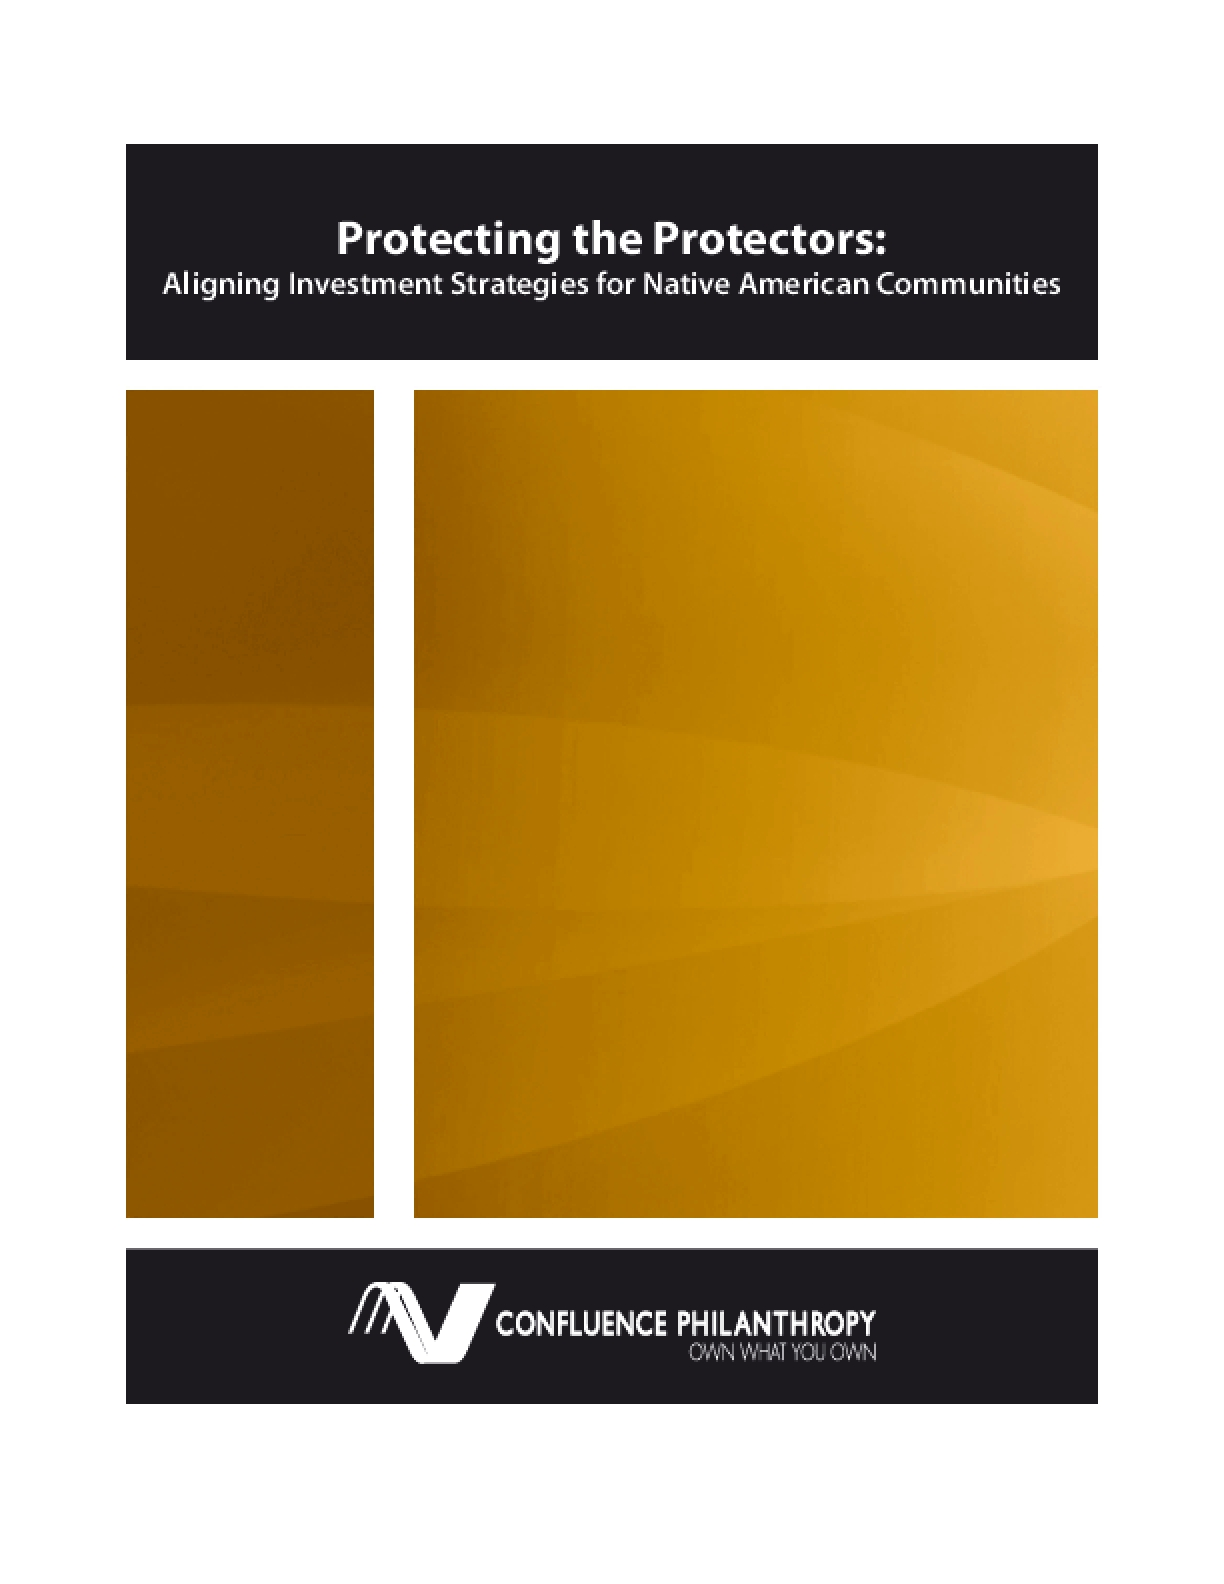 Protecting the Protectors: Aligning Investment Strategies for Native American Communities